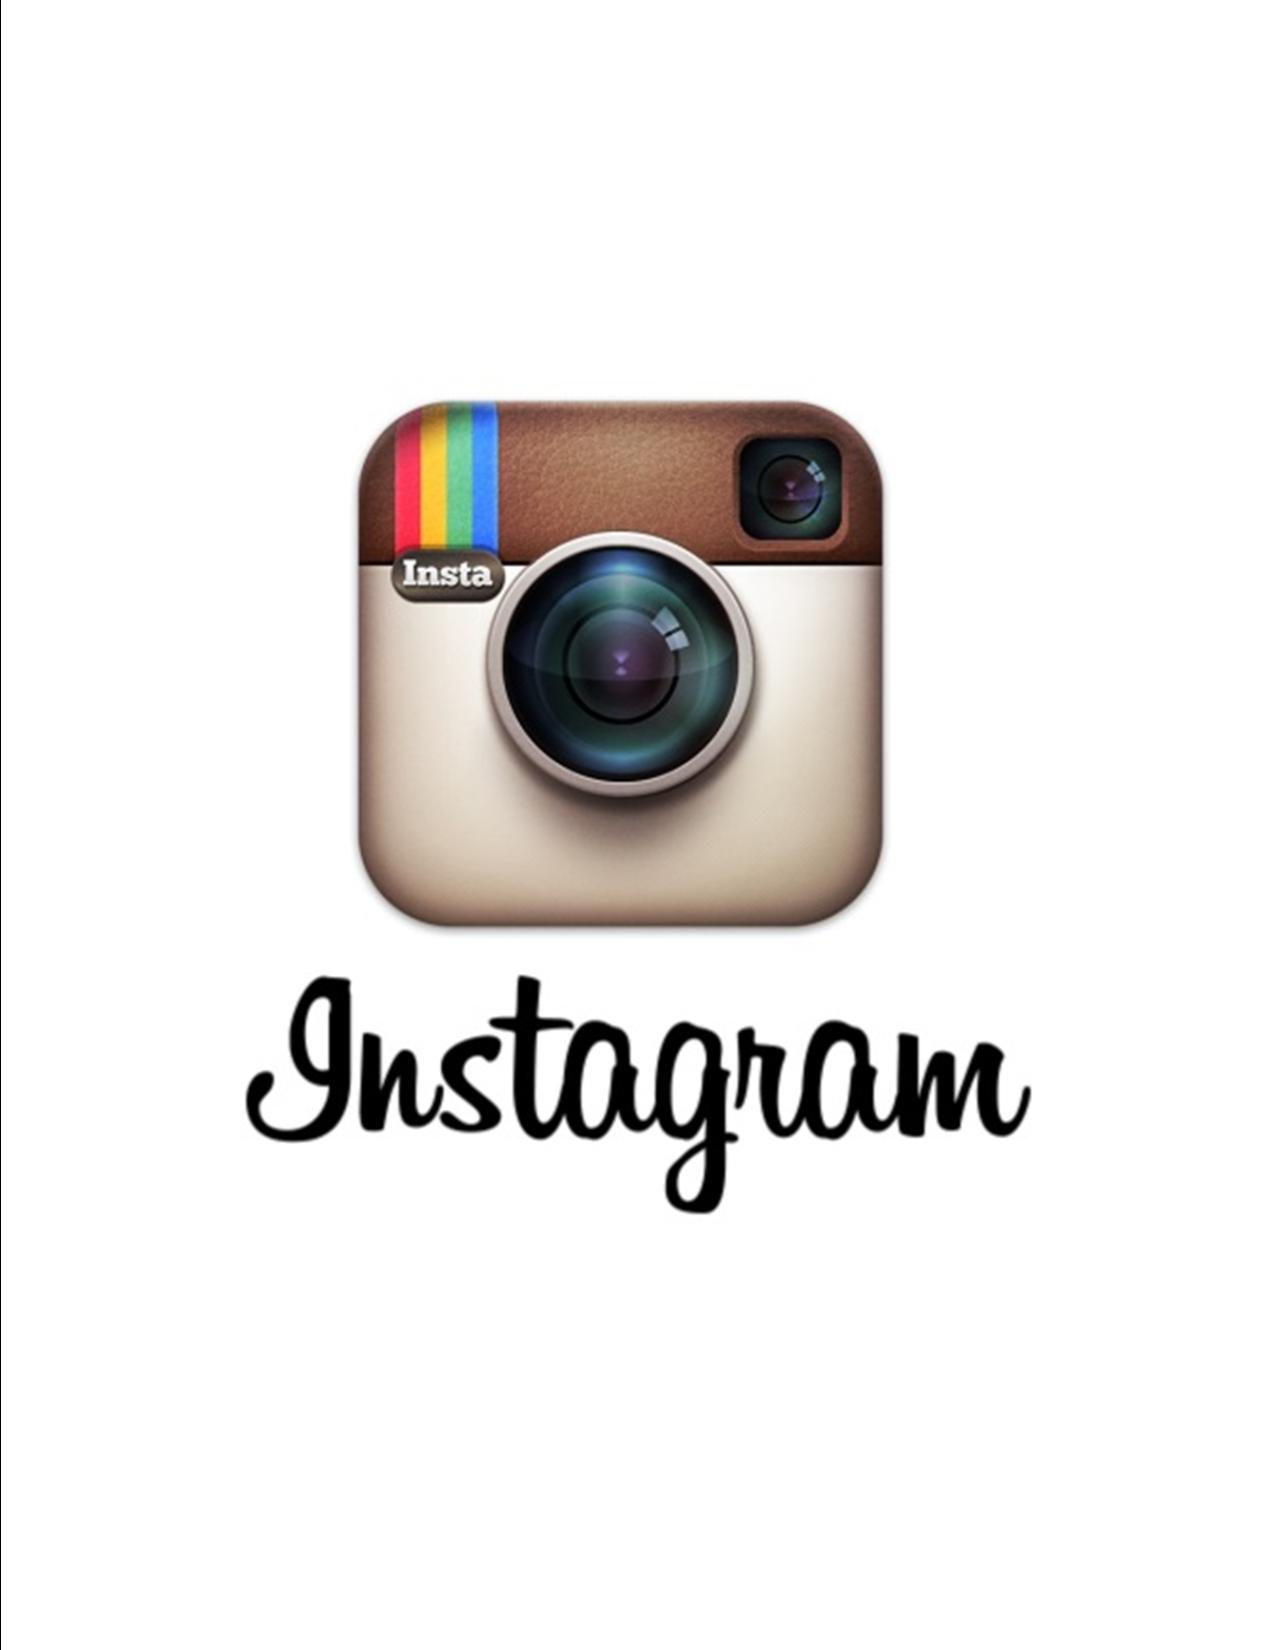 Big-Instagram-Logo